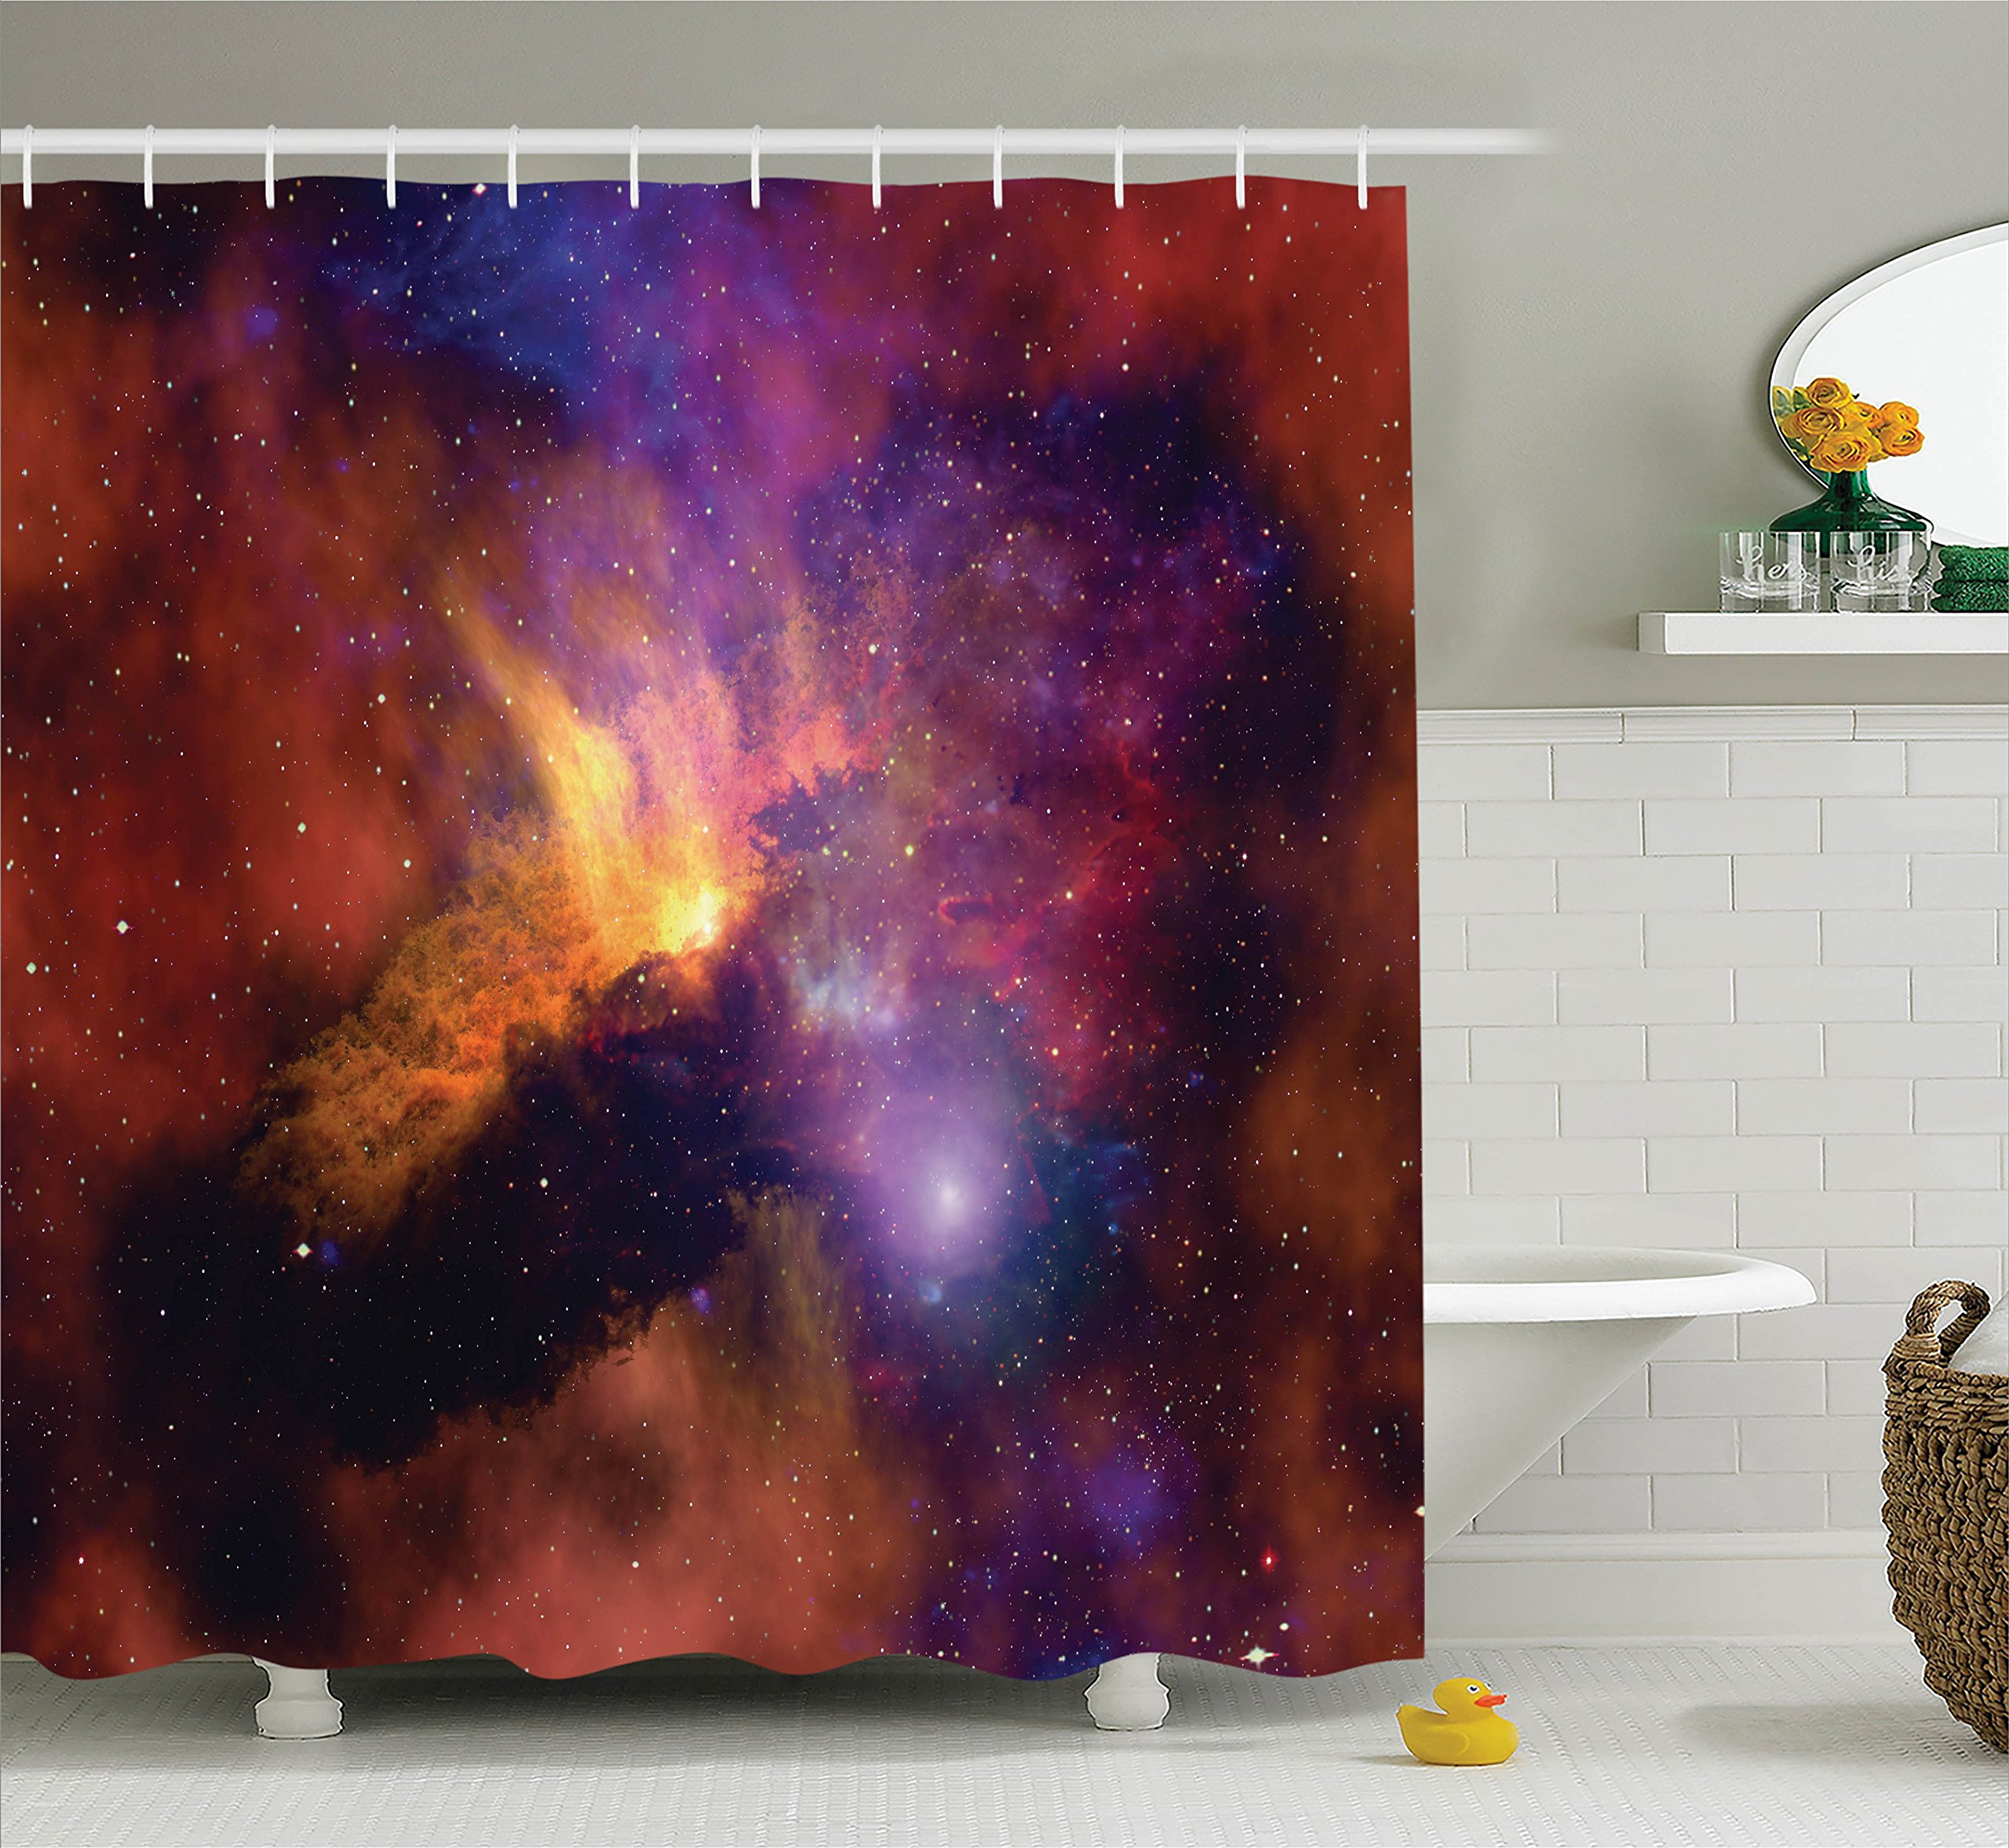 Ambesonne Space Decorations Collection, Space Stars and Nebula Gas and Dust Cloud Celestial Solar Galacy System Print, Polyester Fabric Bathroom Shower Curtain Set with Hooks, Purple Red Orange